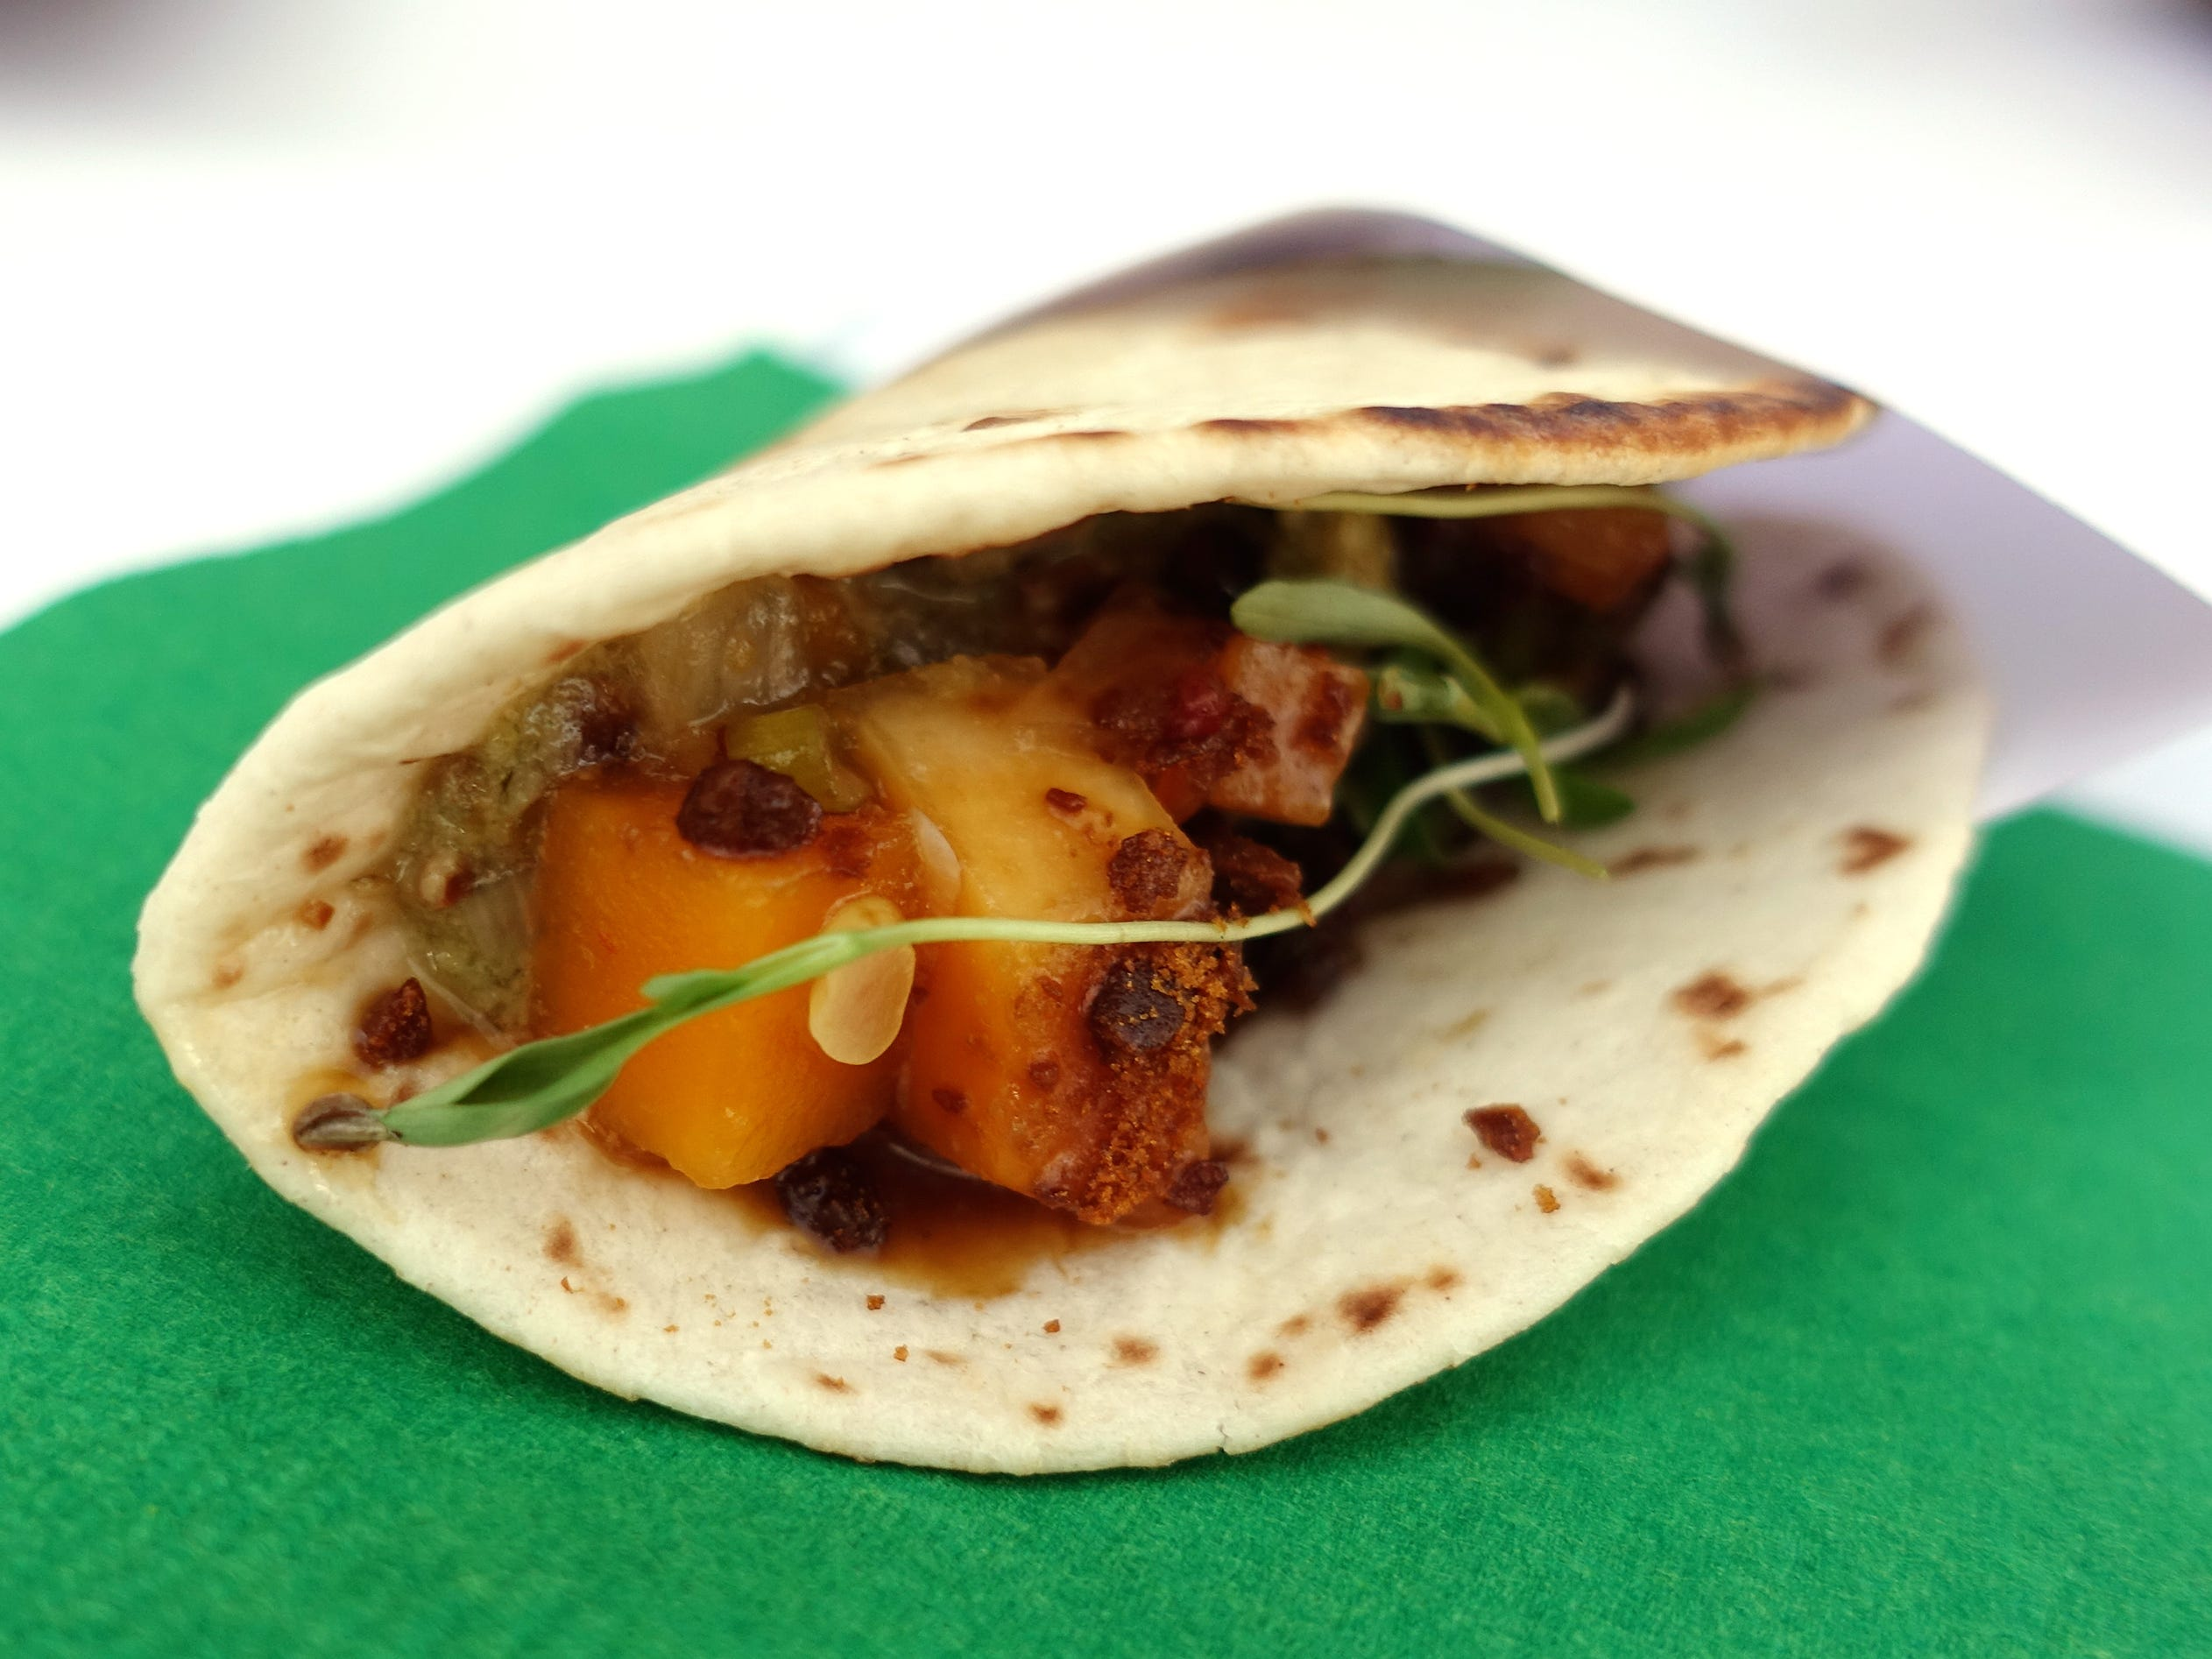 Molasses candied beef cheek taco with fermented butternut squash and pepita salsa from House of Tricks at the 2019 Devour Culinary Classic at the Desert Botanical Garden in Phoenix.